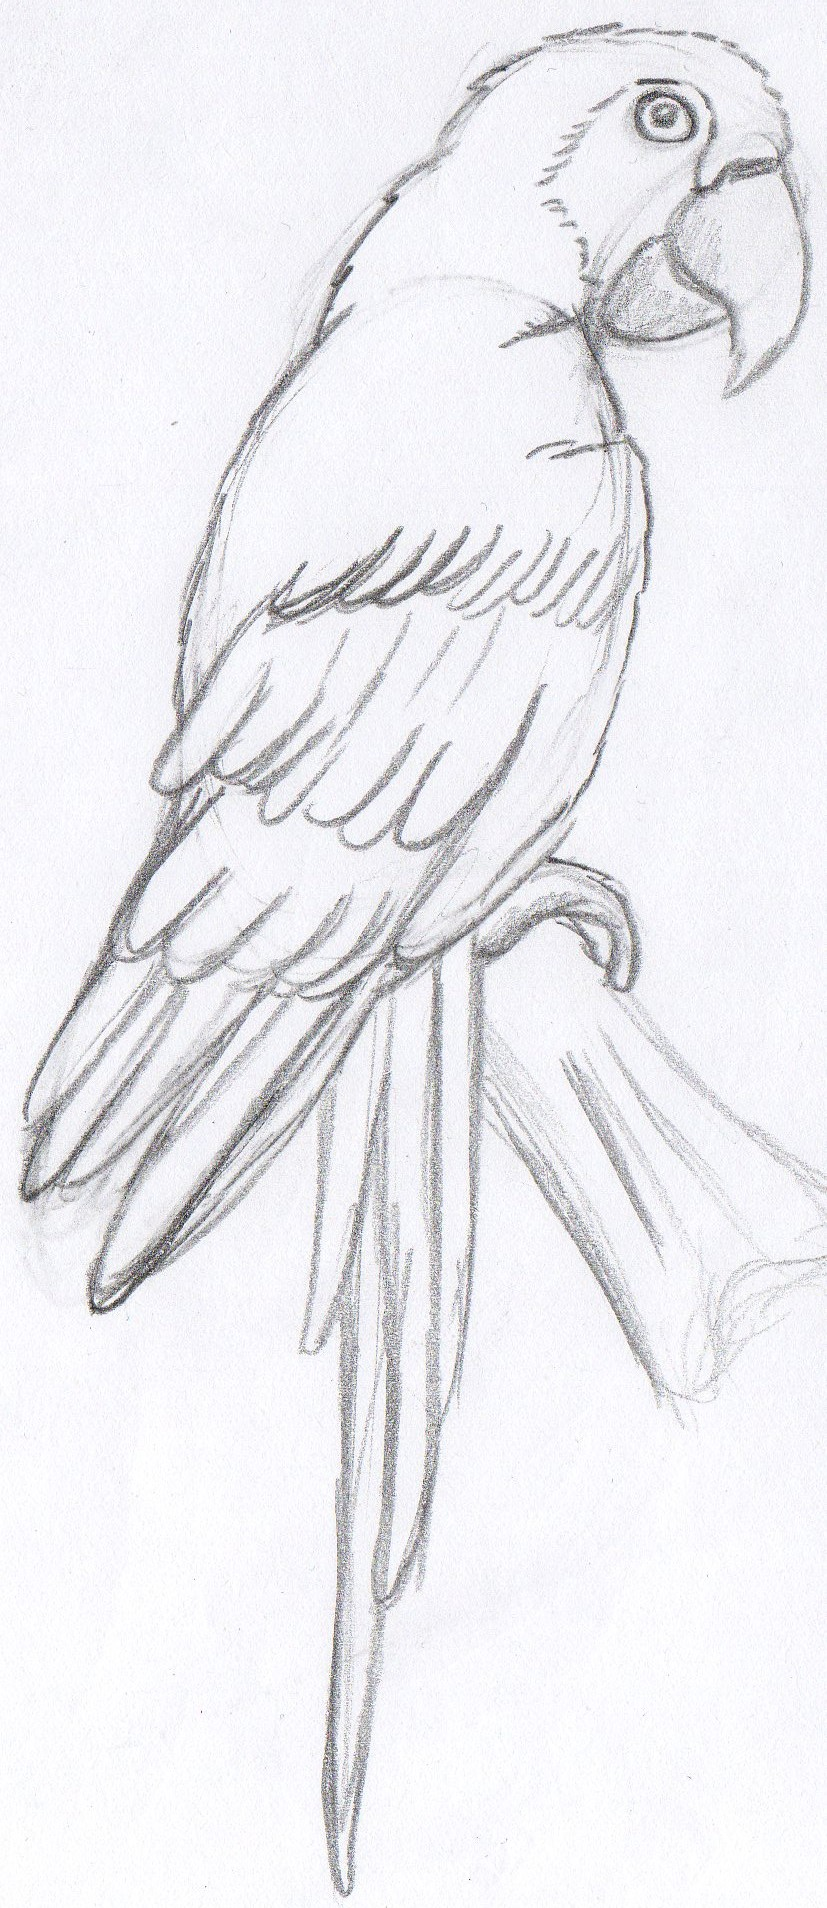 Little Parrot Sketch By Chlorofilla On DeviantArt